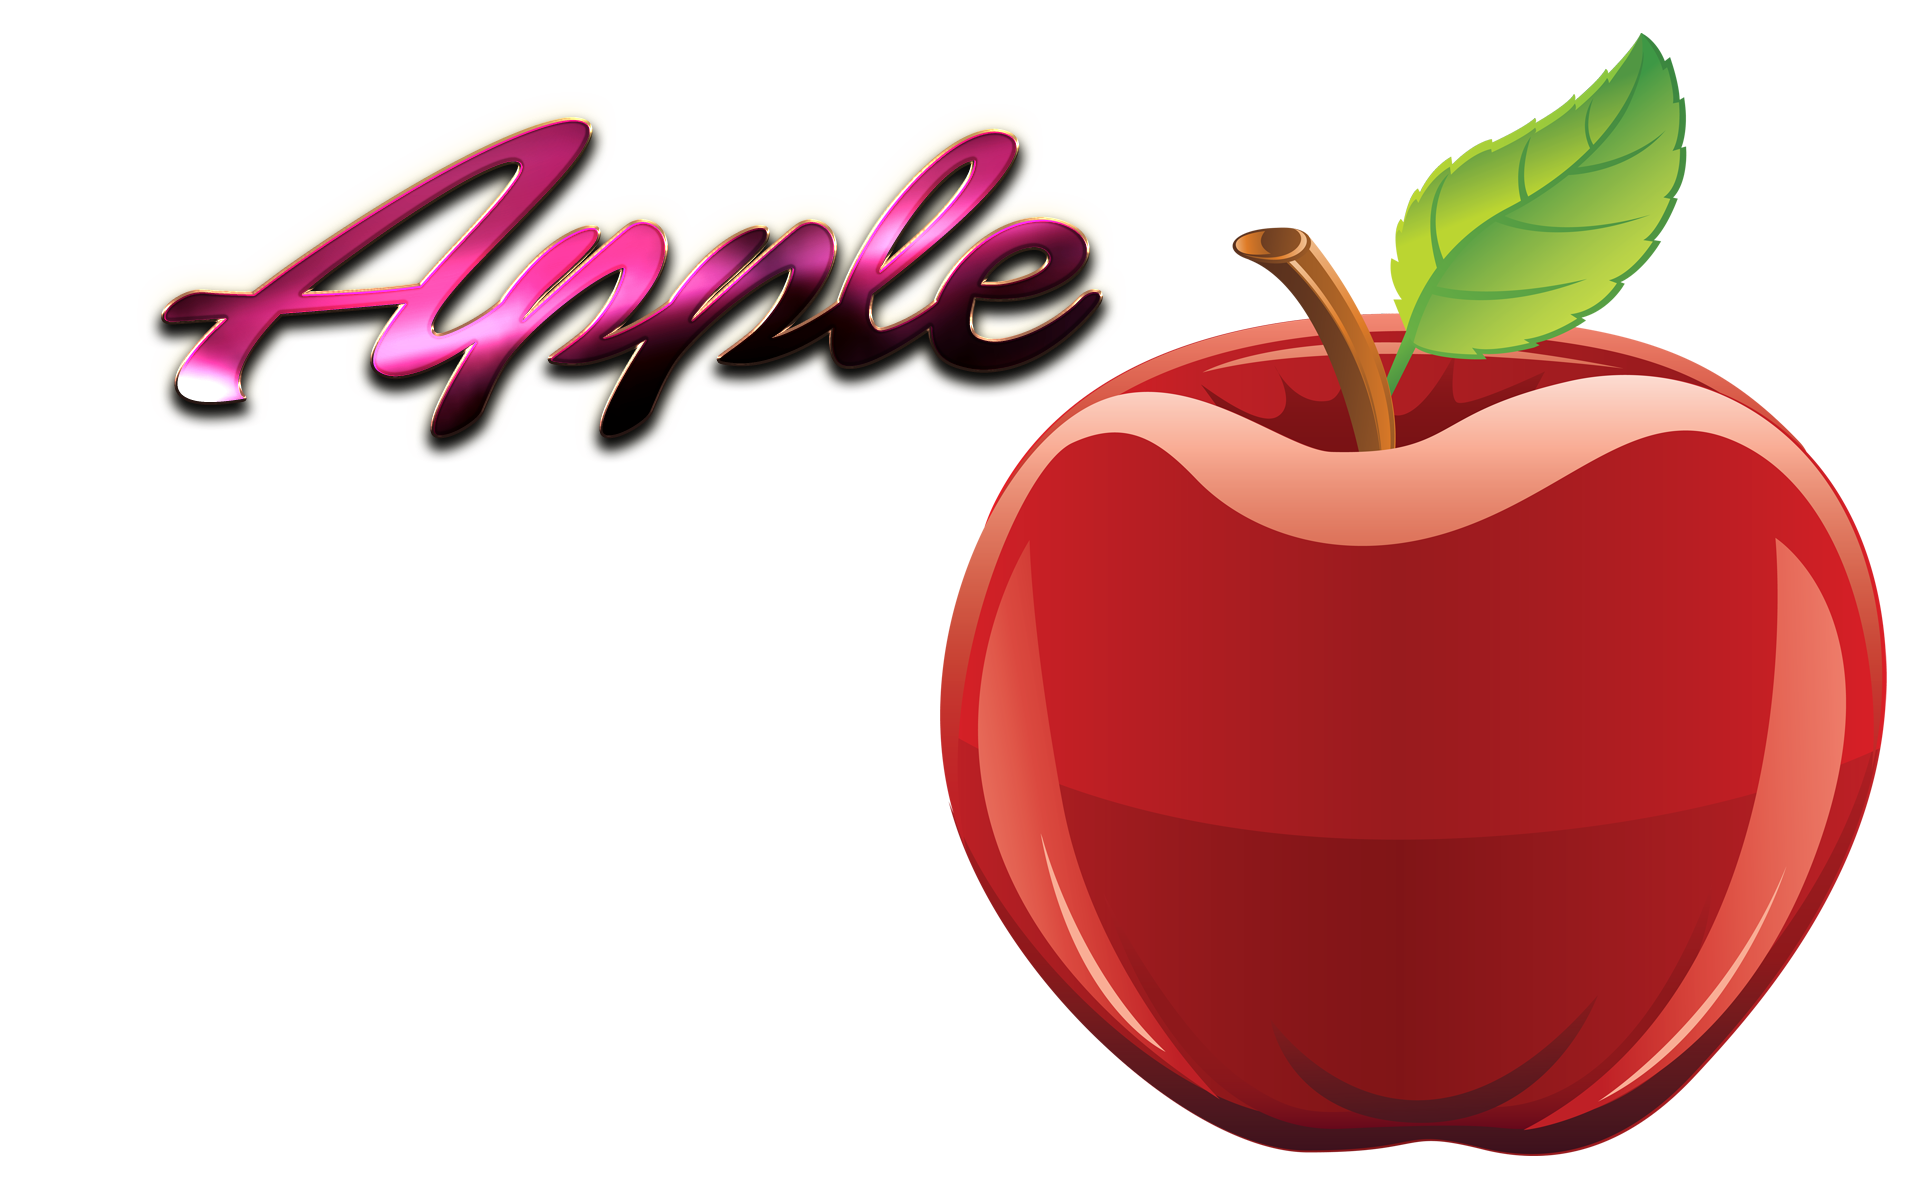 Apple clipart name. Png ready made logo